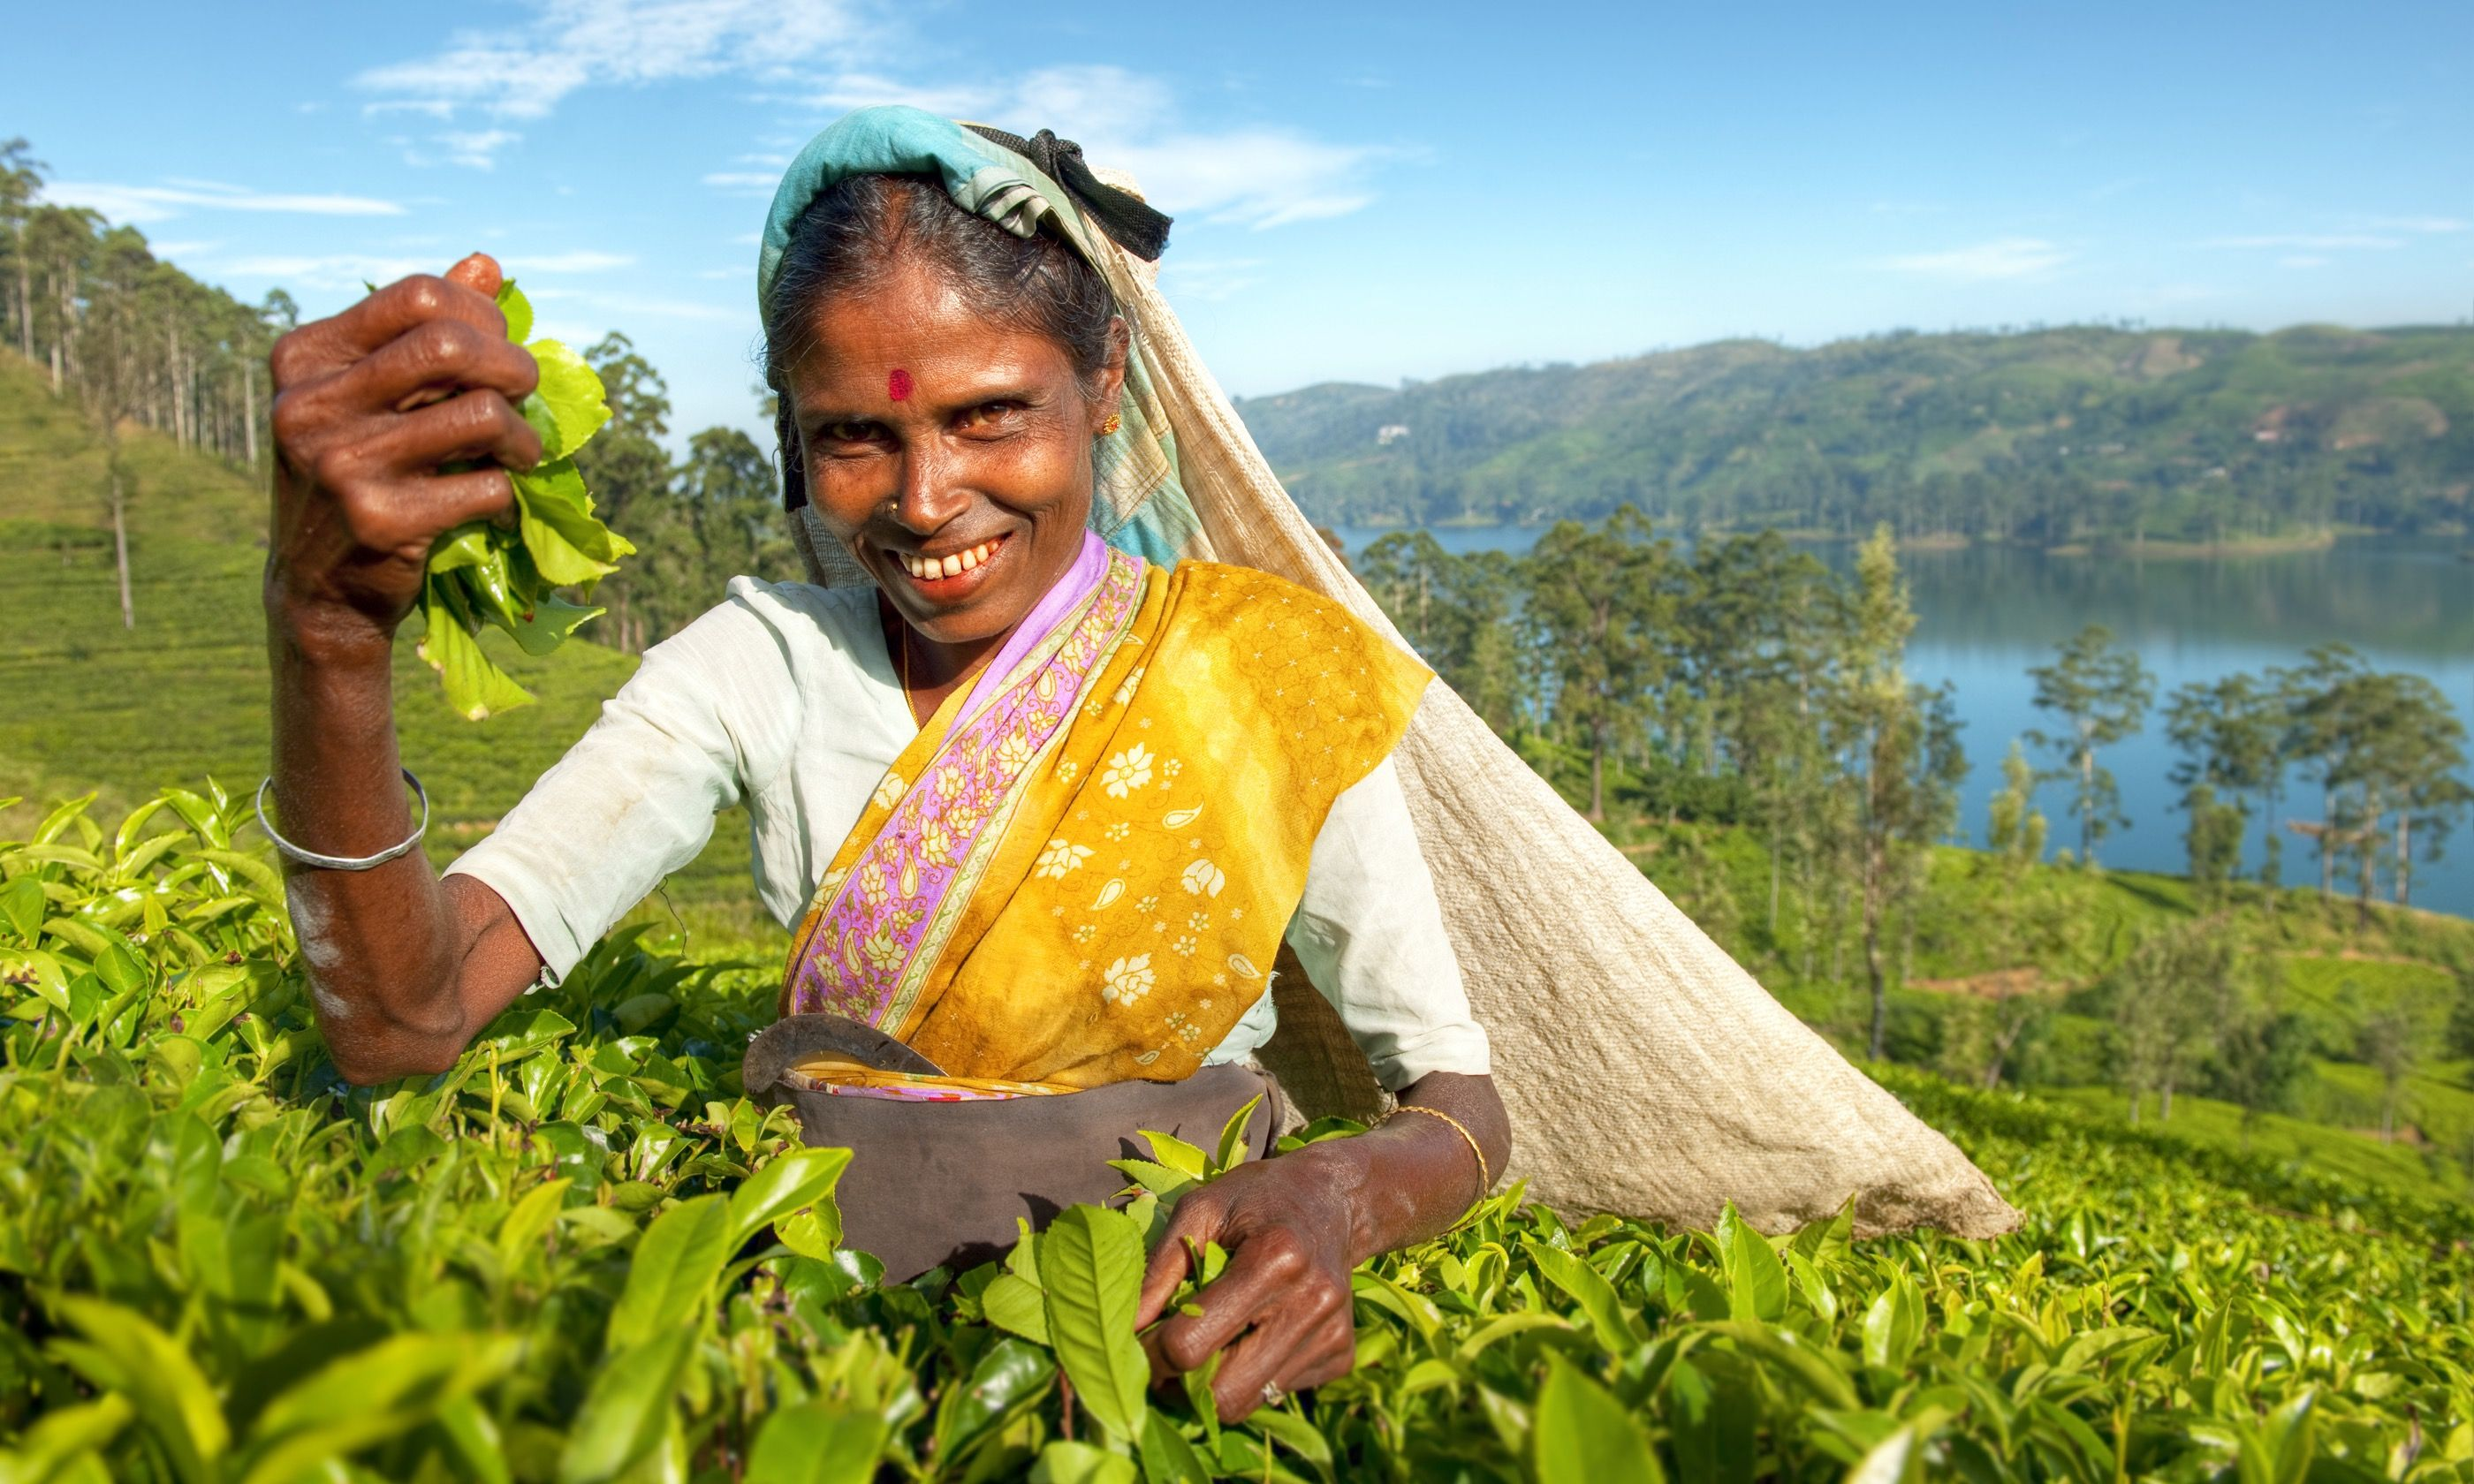 Picking tea in Sri Lanka (Shutterstock.com)